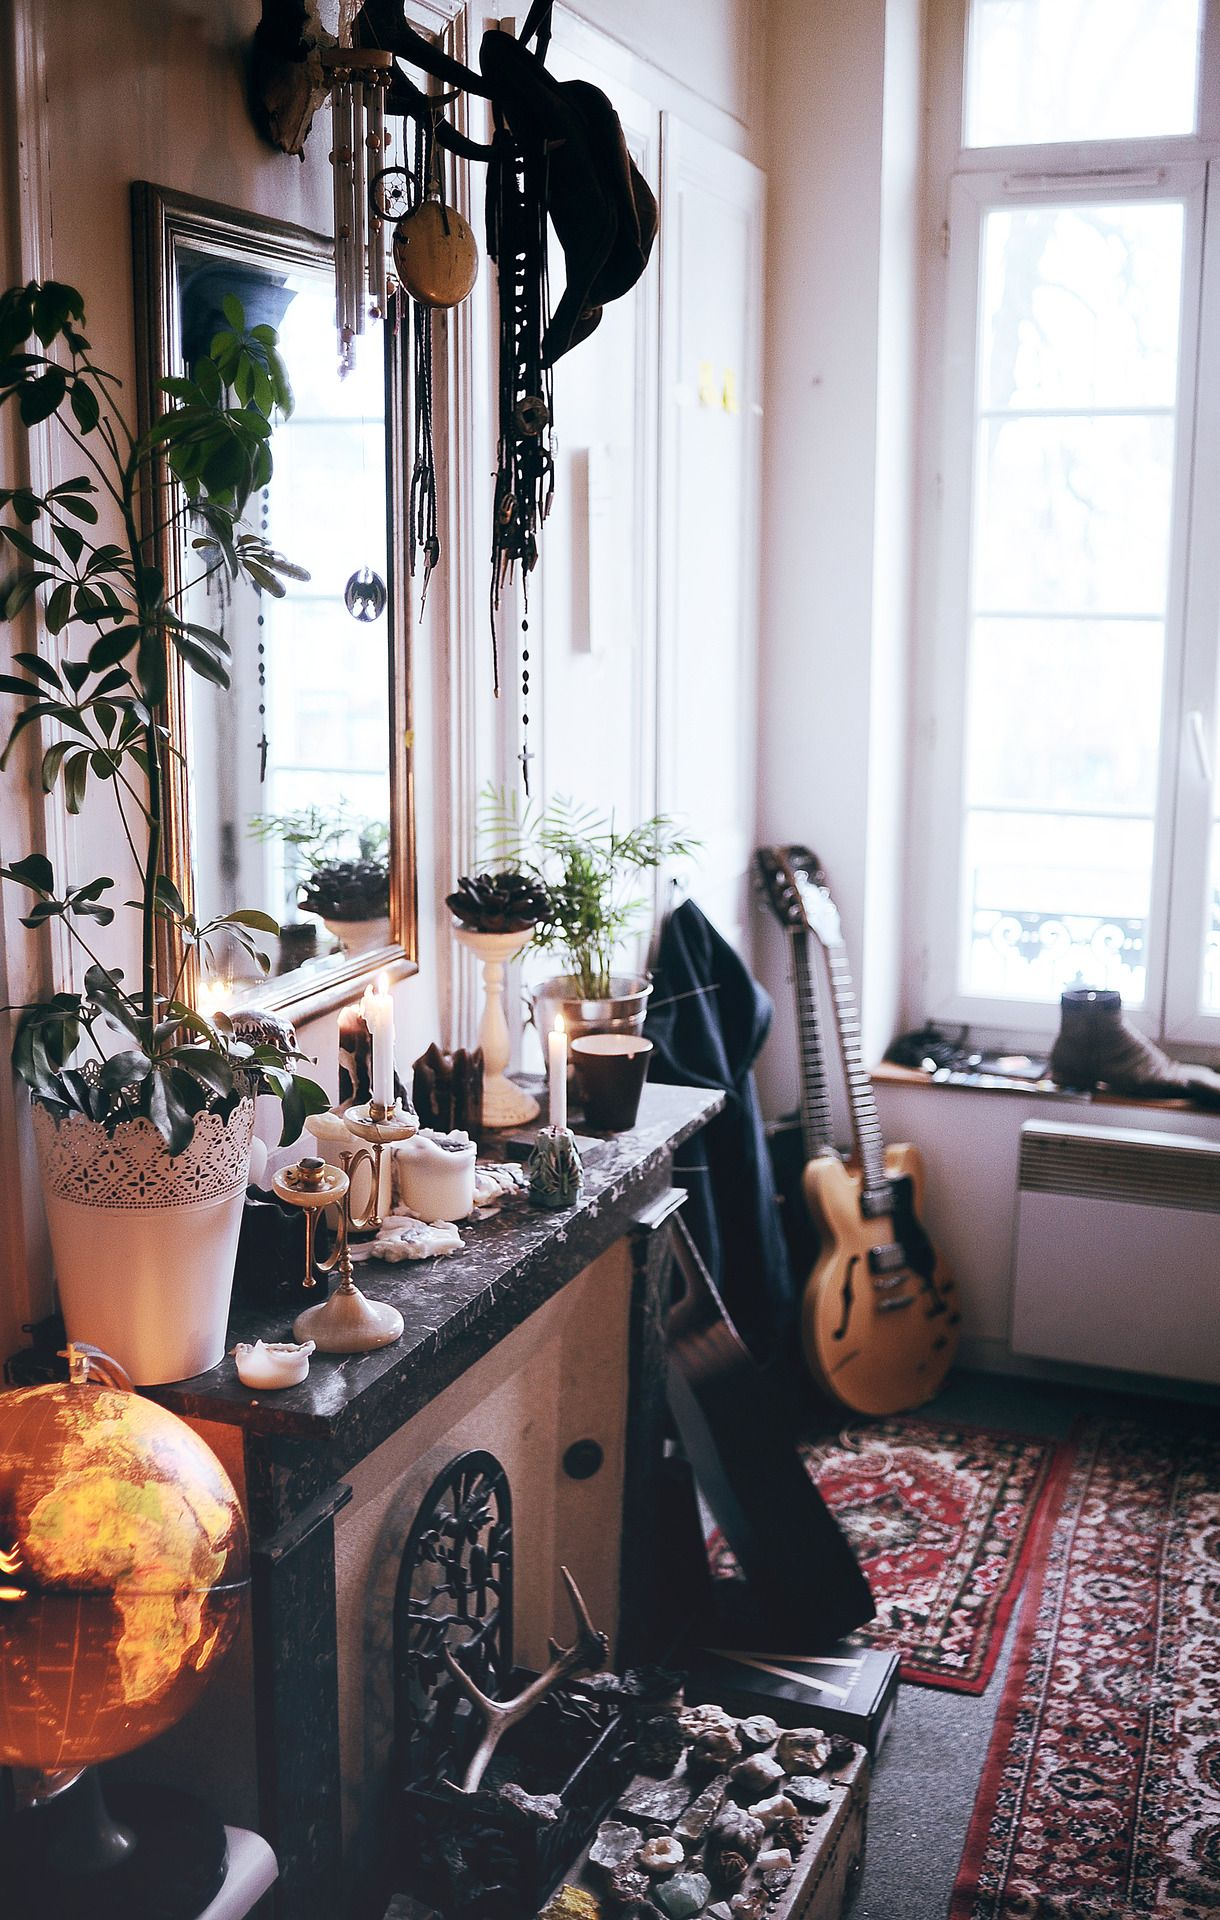 candles plant decorate mirror rugs and all with white walls to